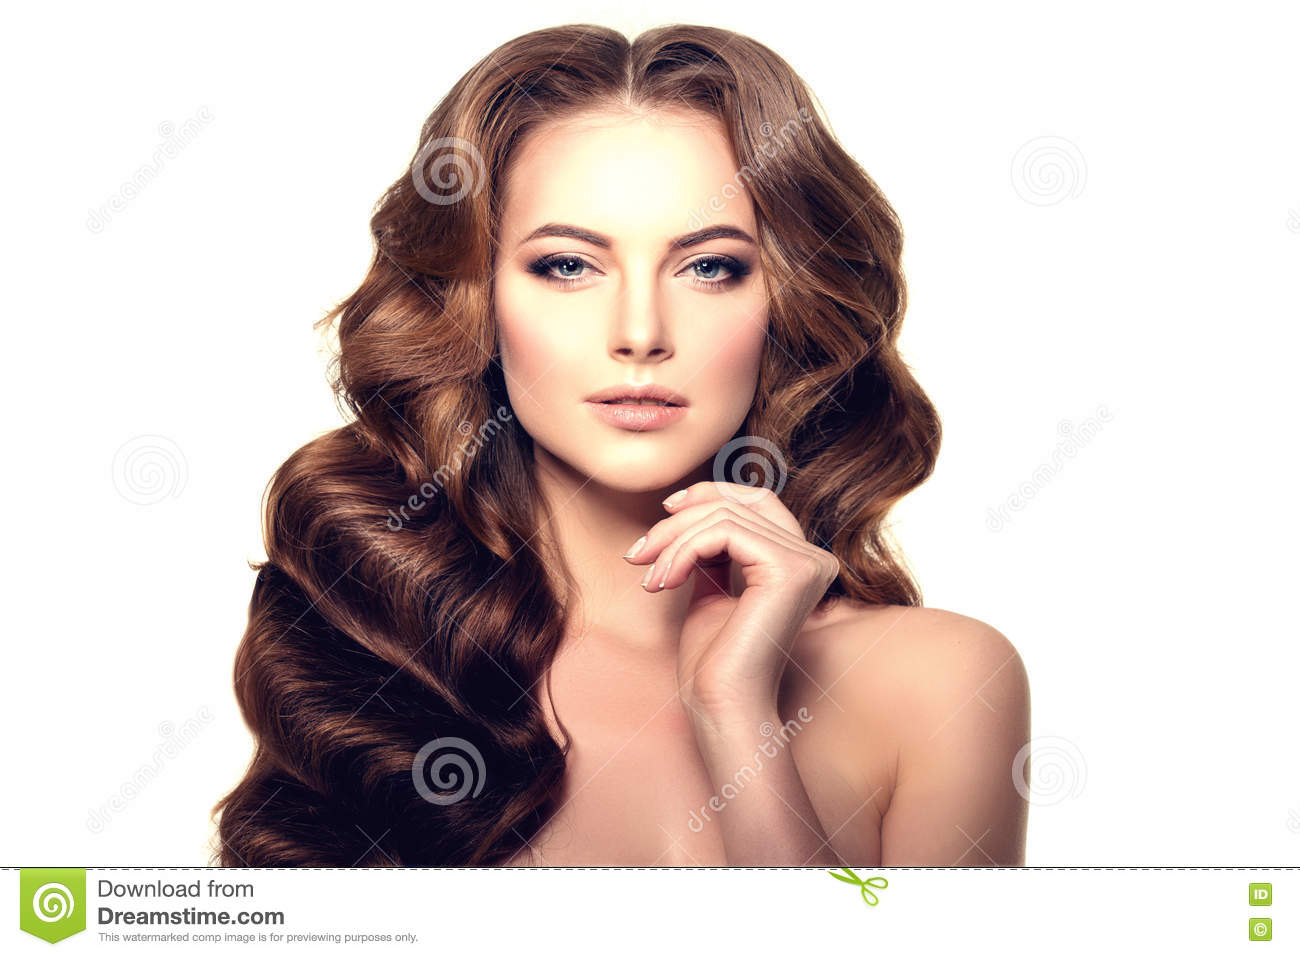 Long Hair Waves Curls Hairstyle Hair Salon Updo Fashion Mode Royalty Free Stock Photo